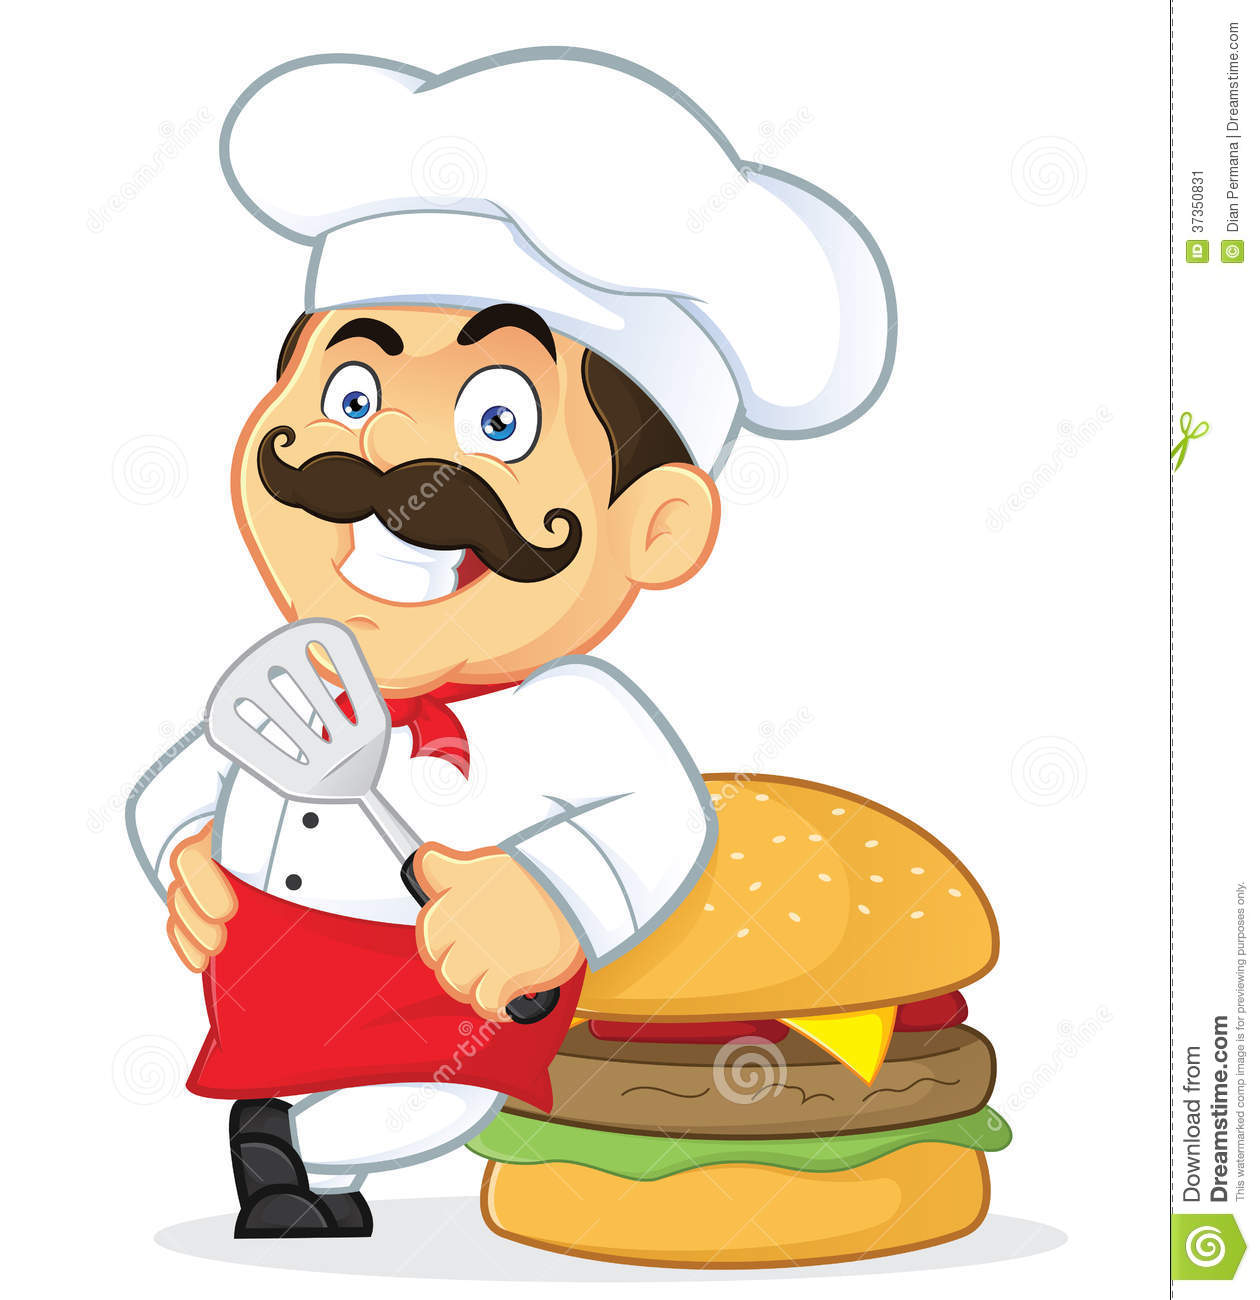 chef with giant burger stock vector illustration of fast clip art chef images clipart chevy suburban